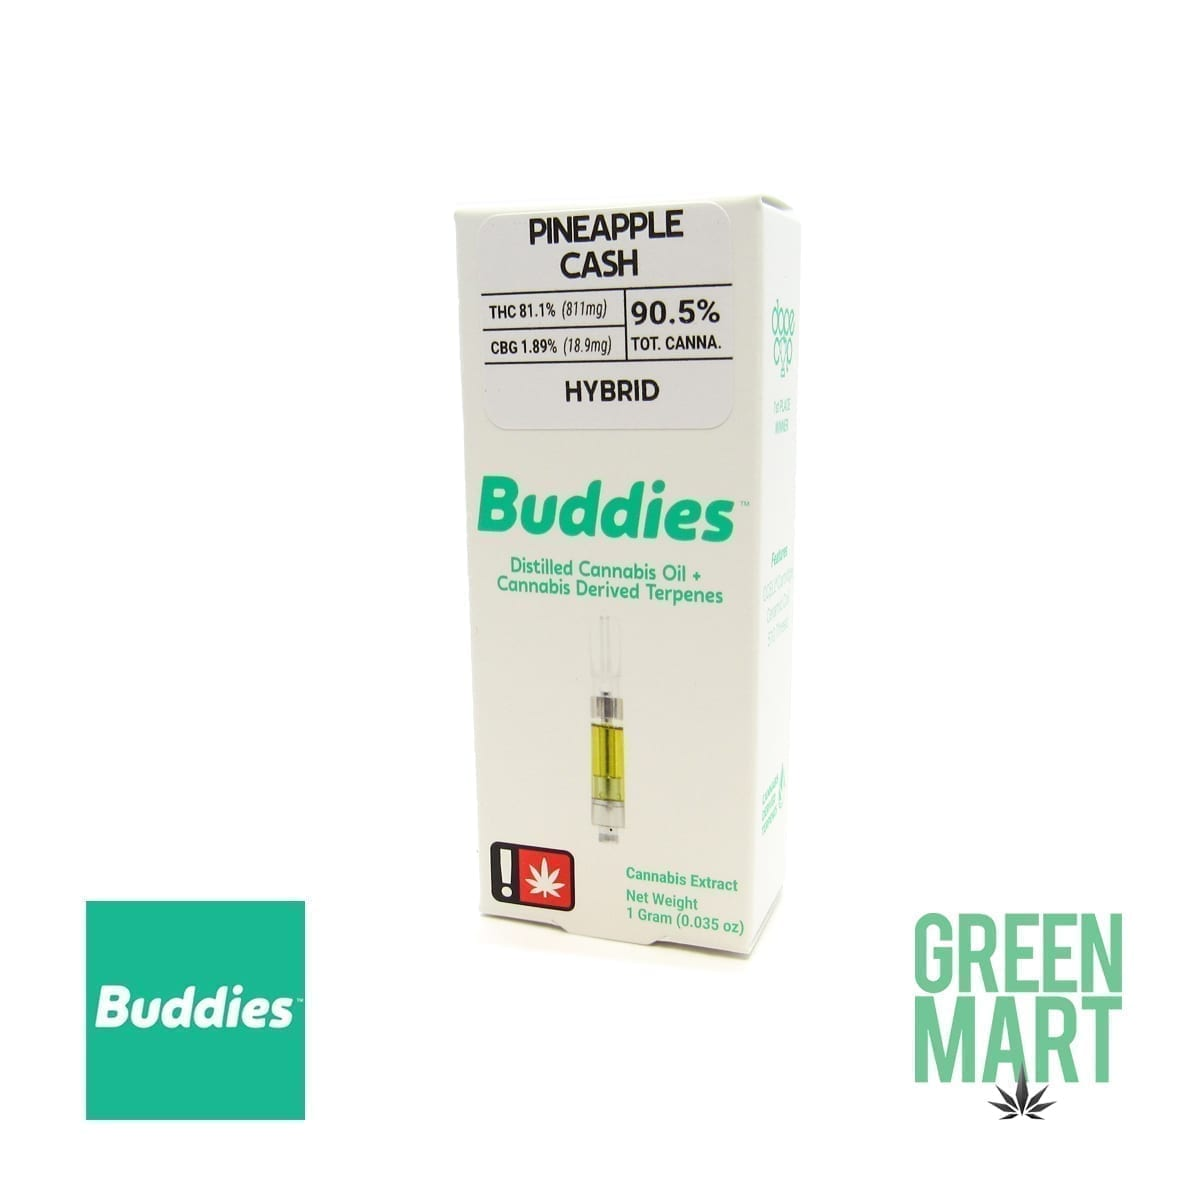 Buddies Brand Distillate Cartridge - Pineapple Cash